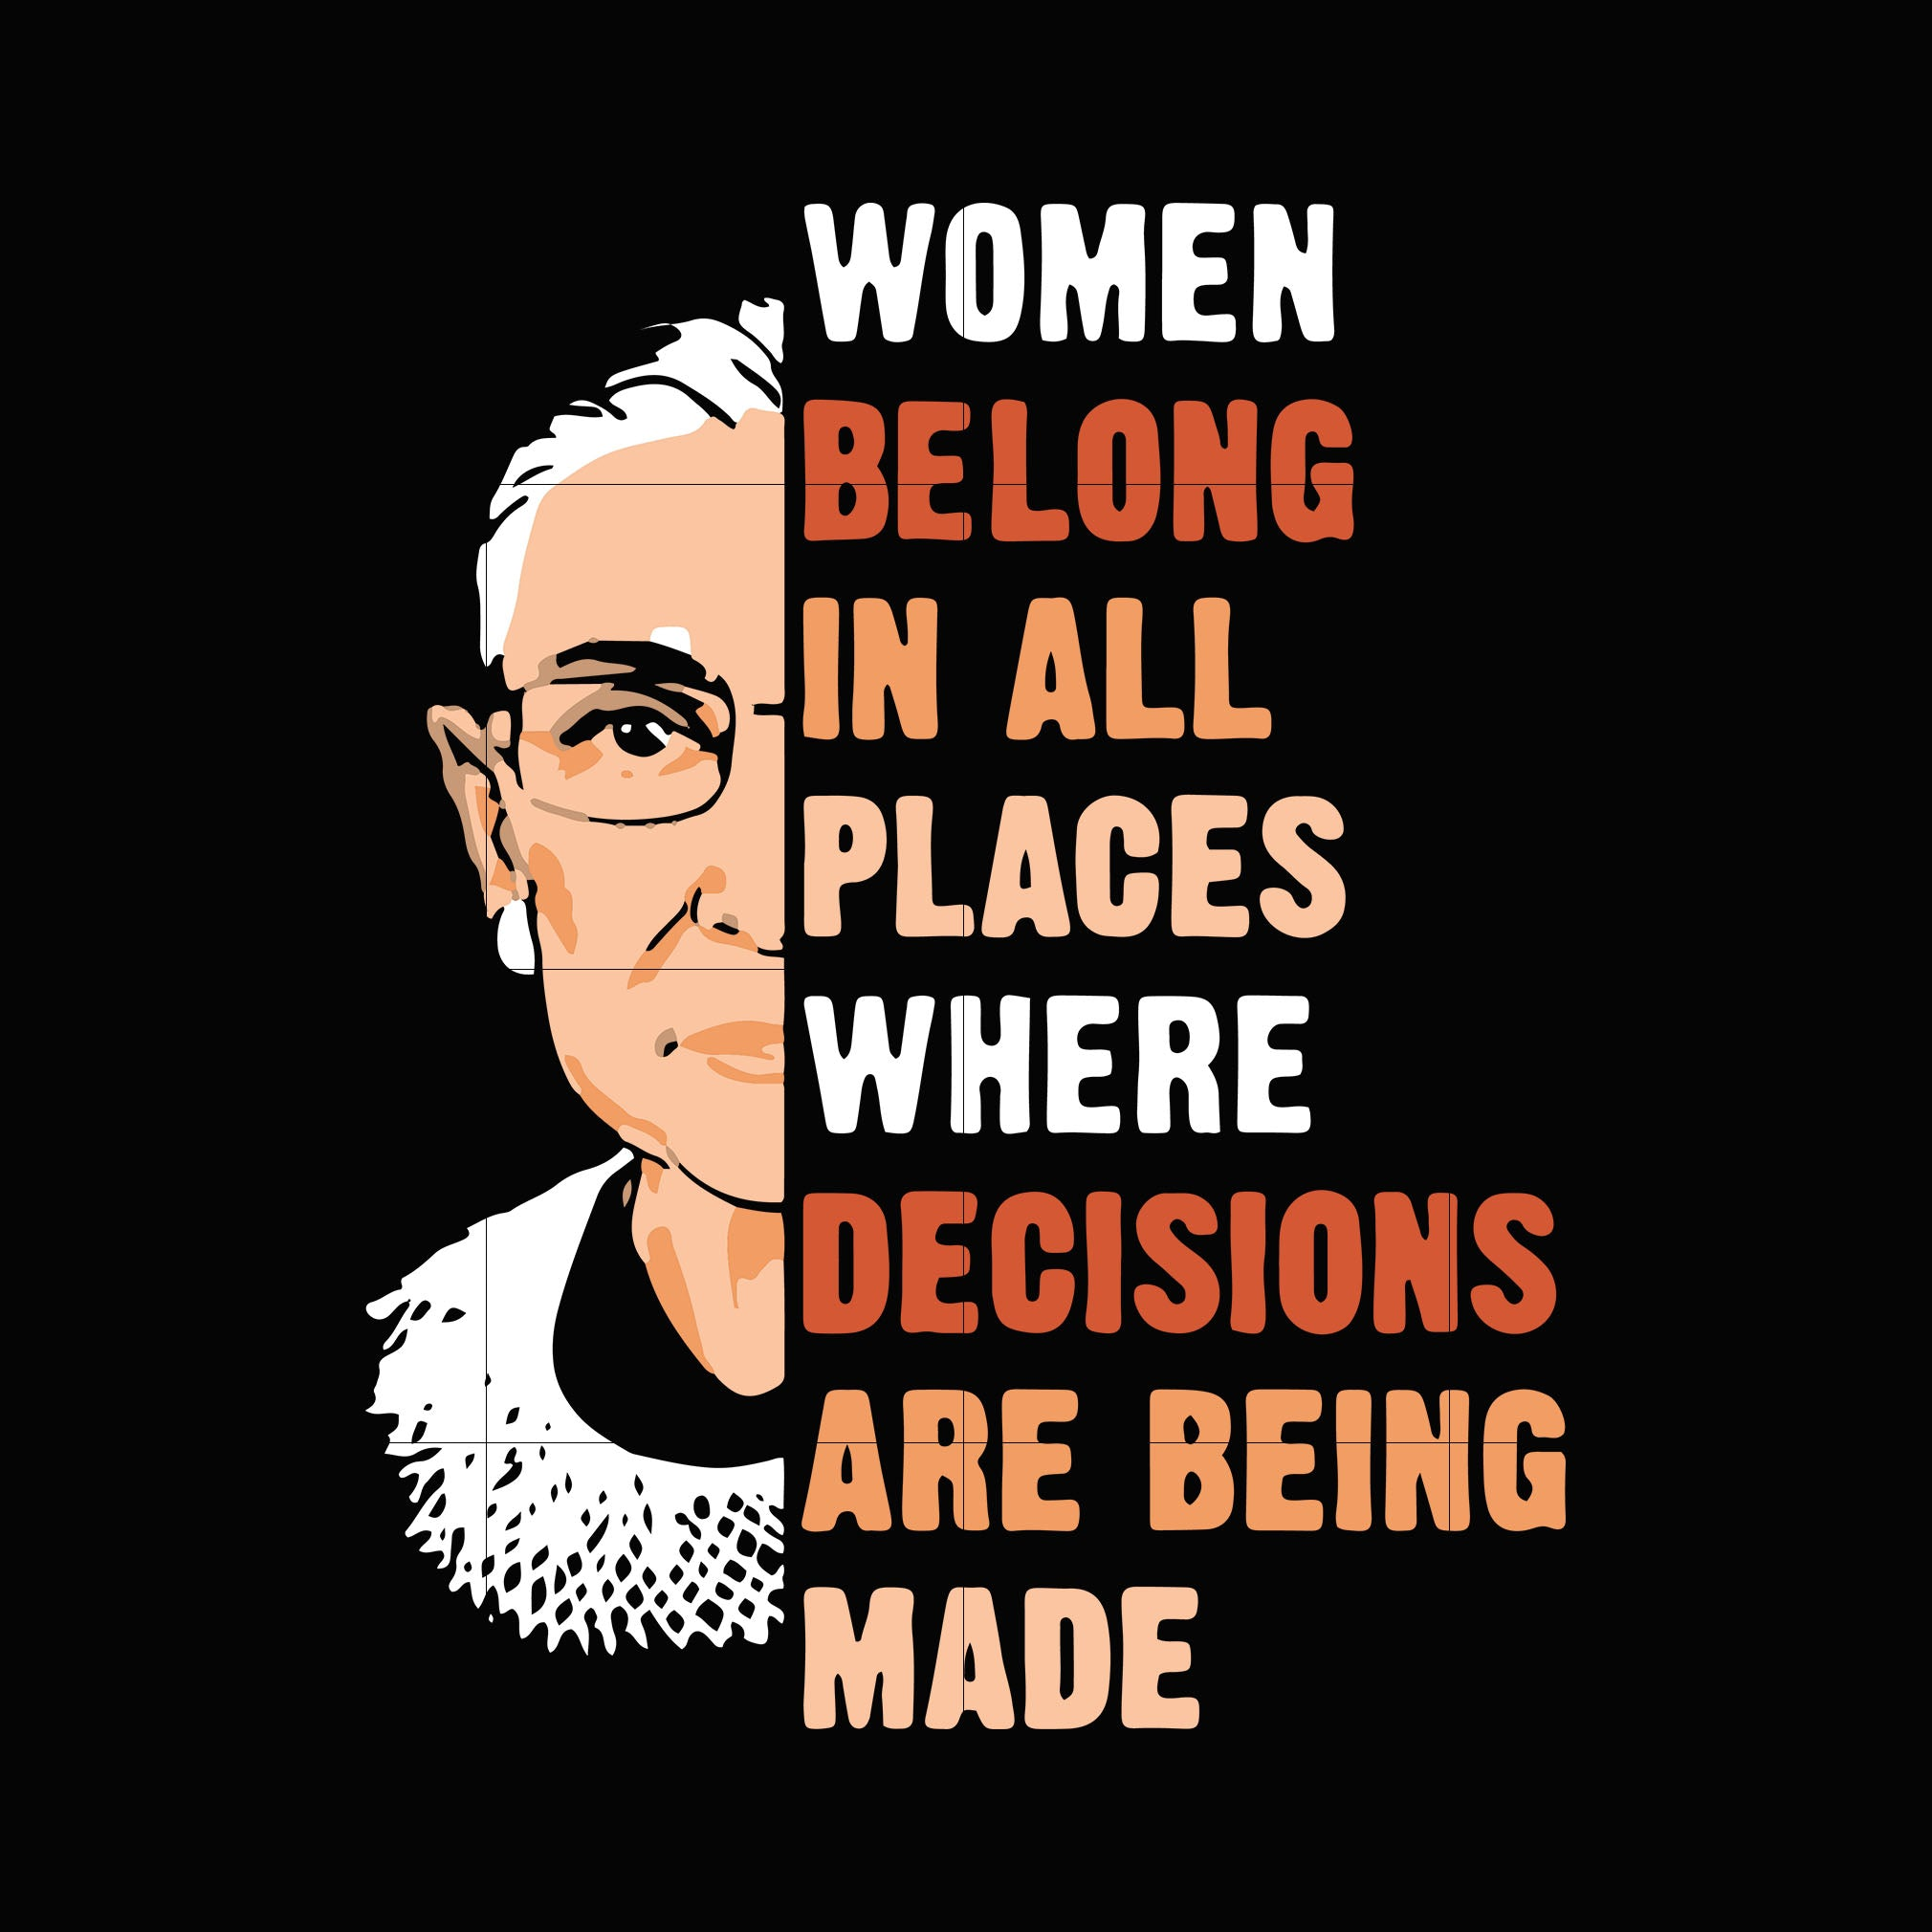 Women belong in all places where decisions are being made svg ,dxf,eps,png digital file